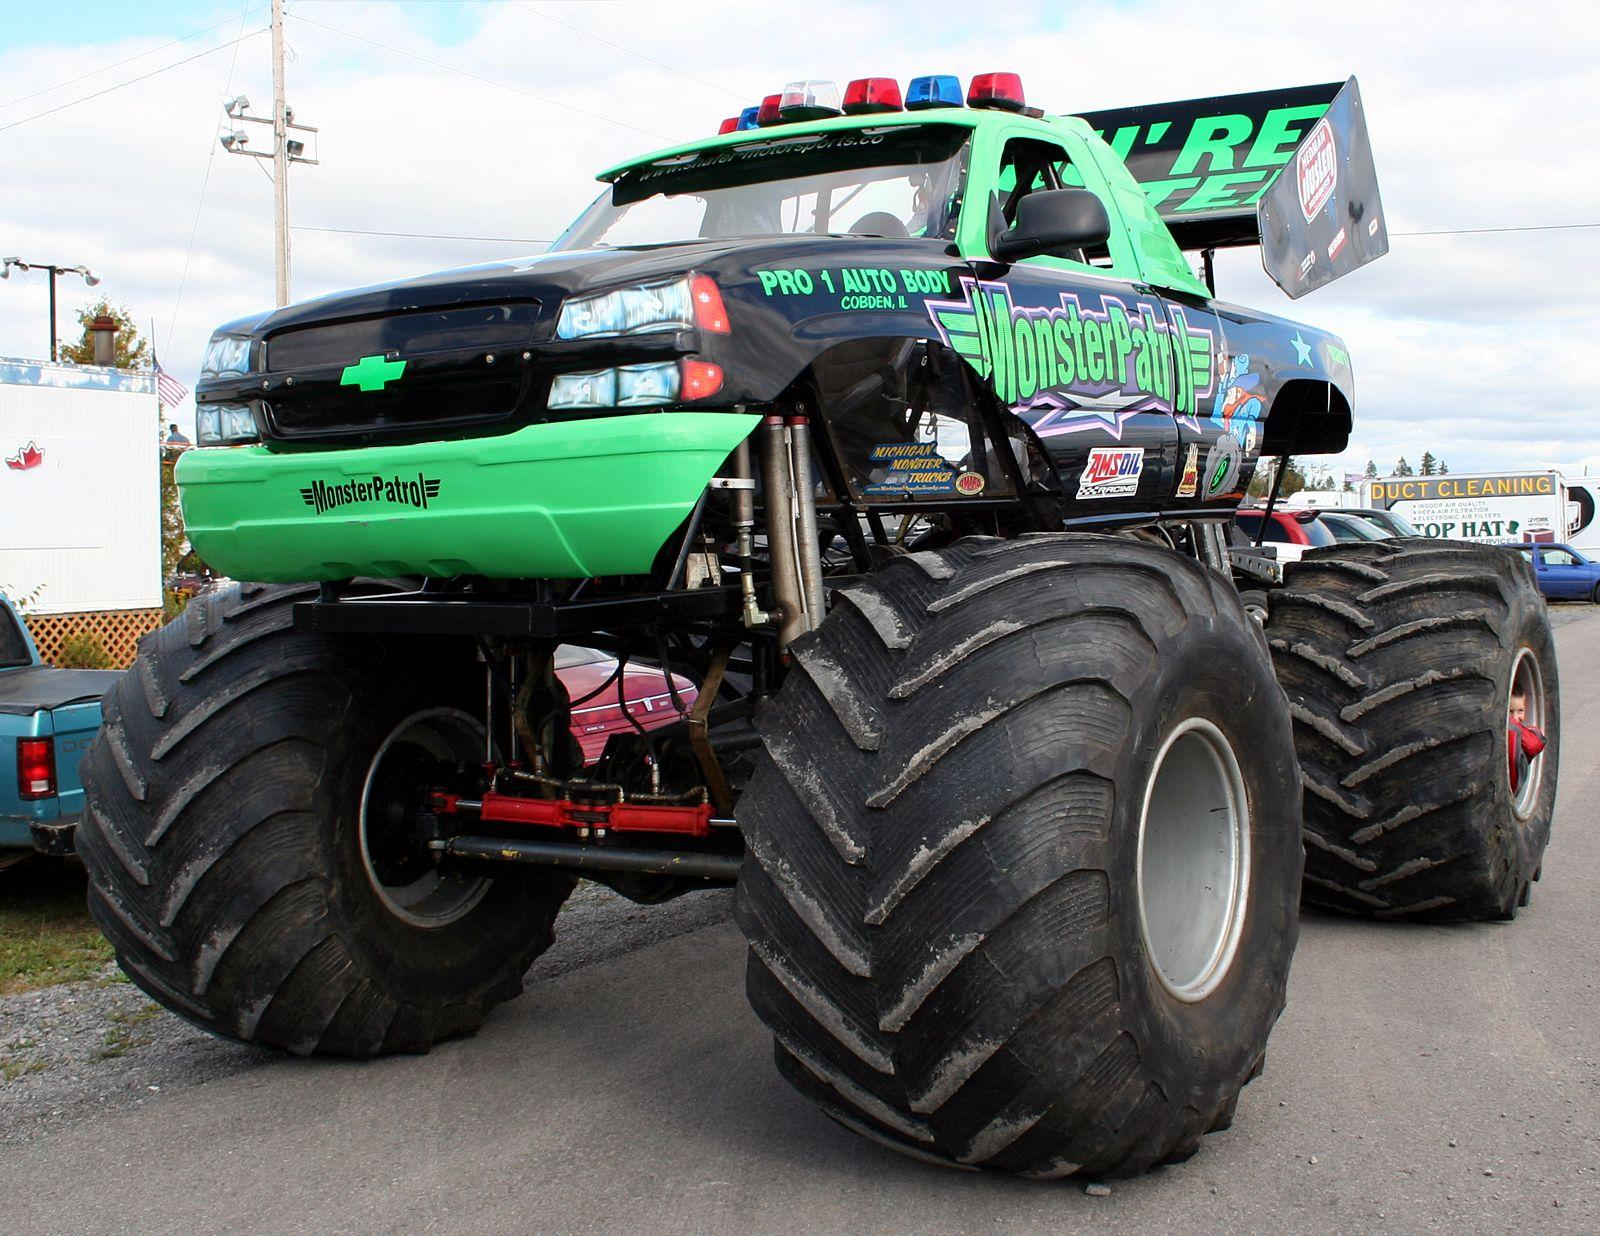 Monster Truck Some Amazing Wallpapers & Image